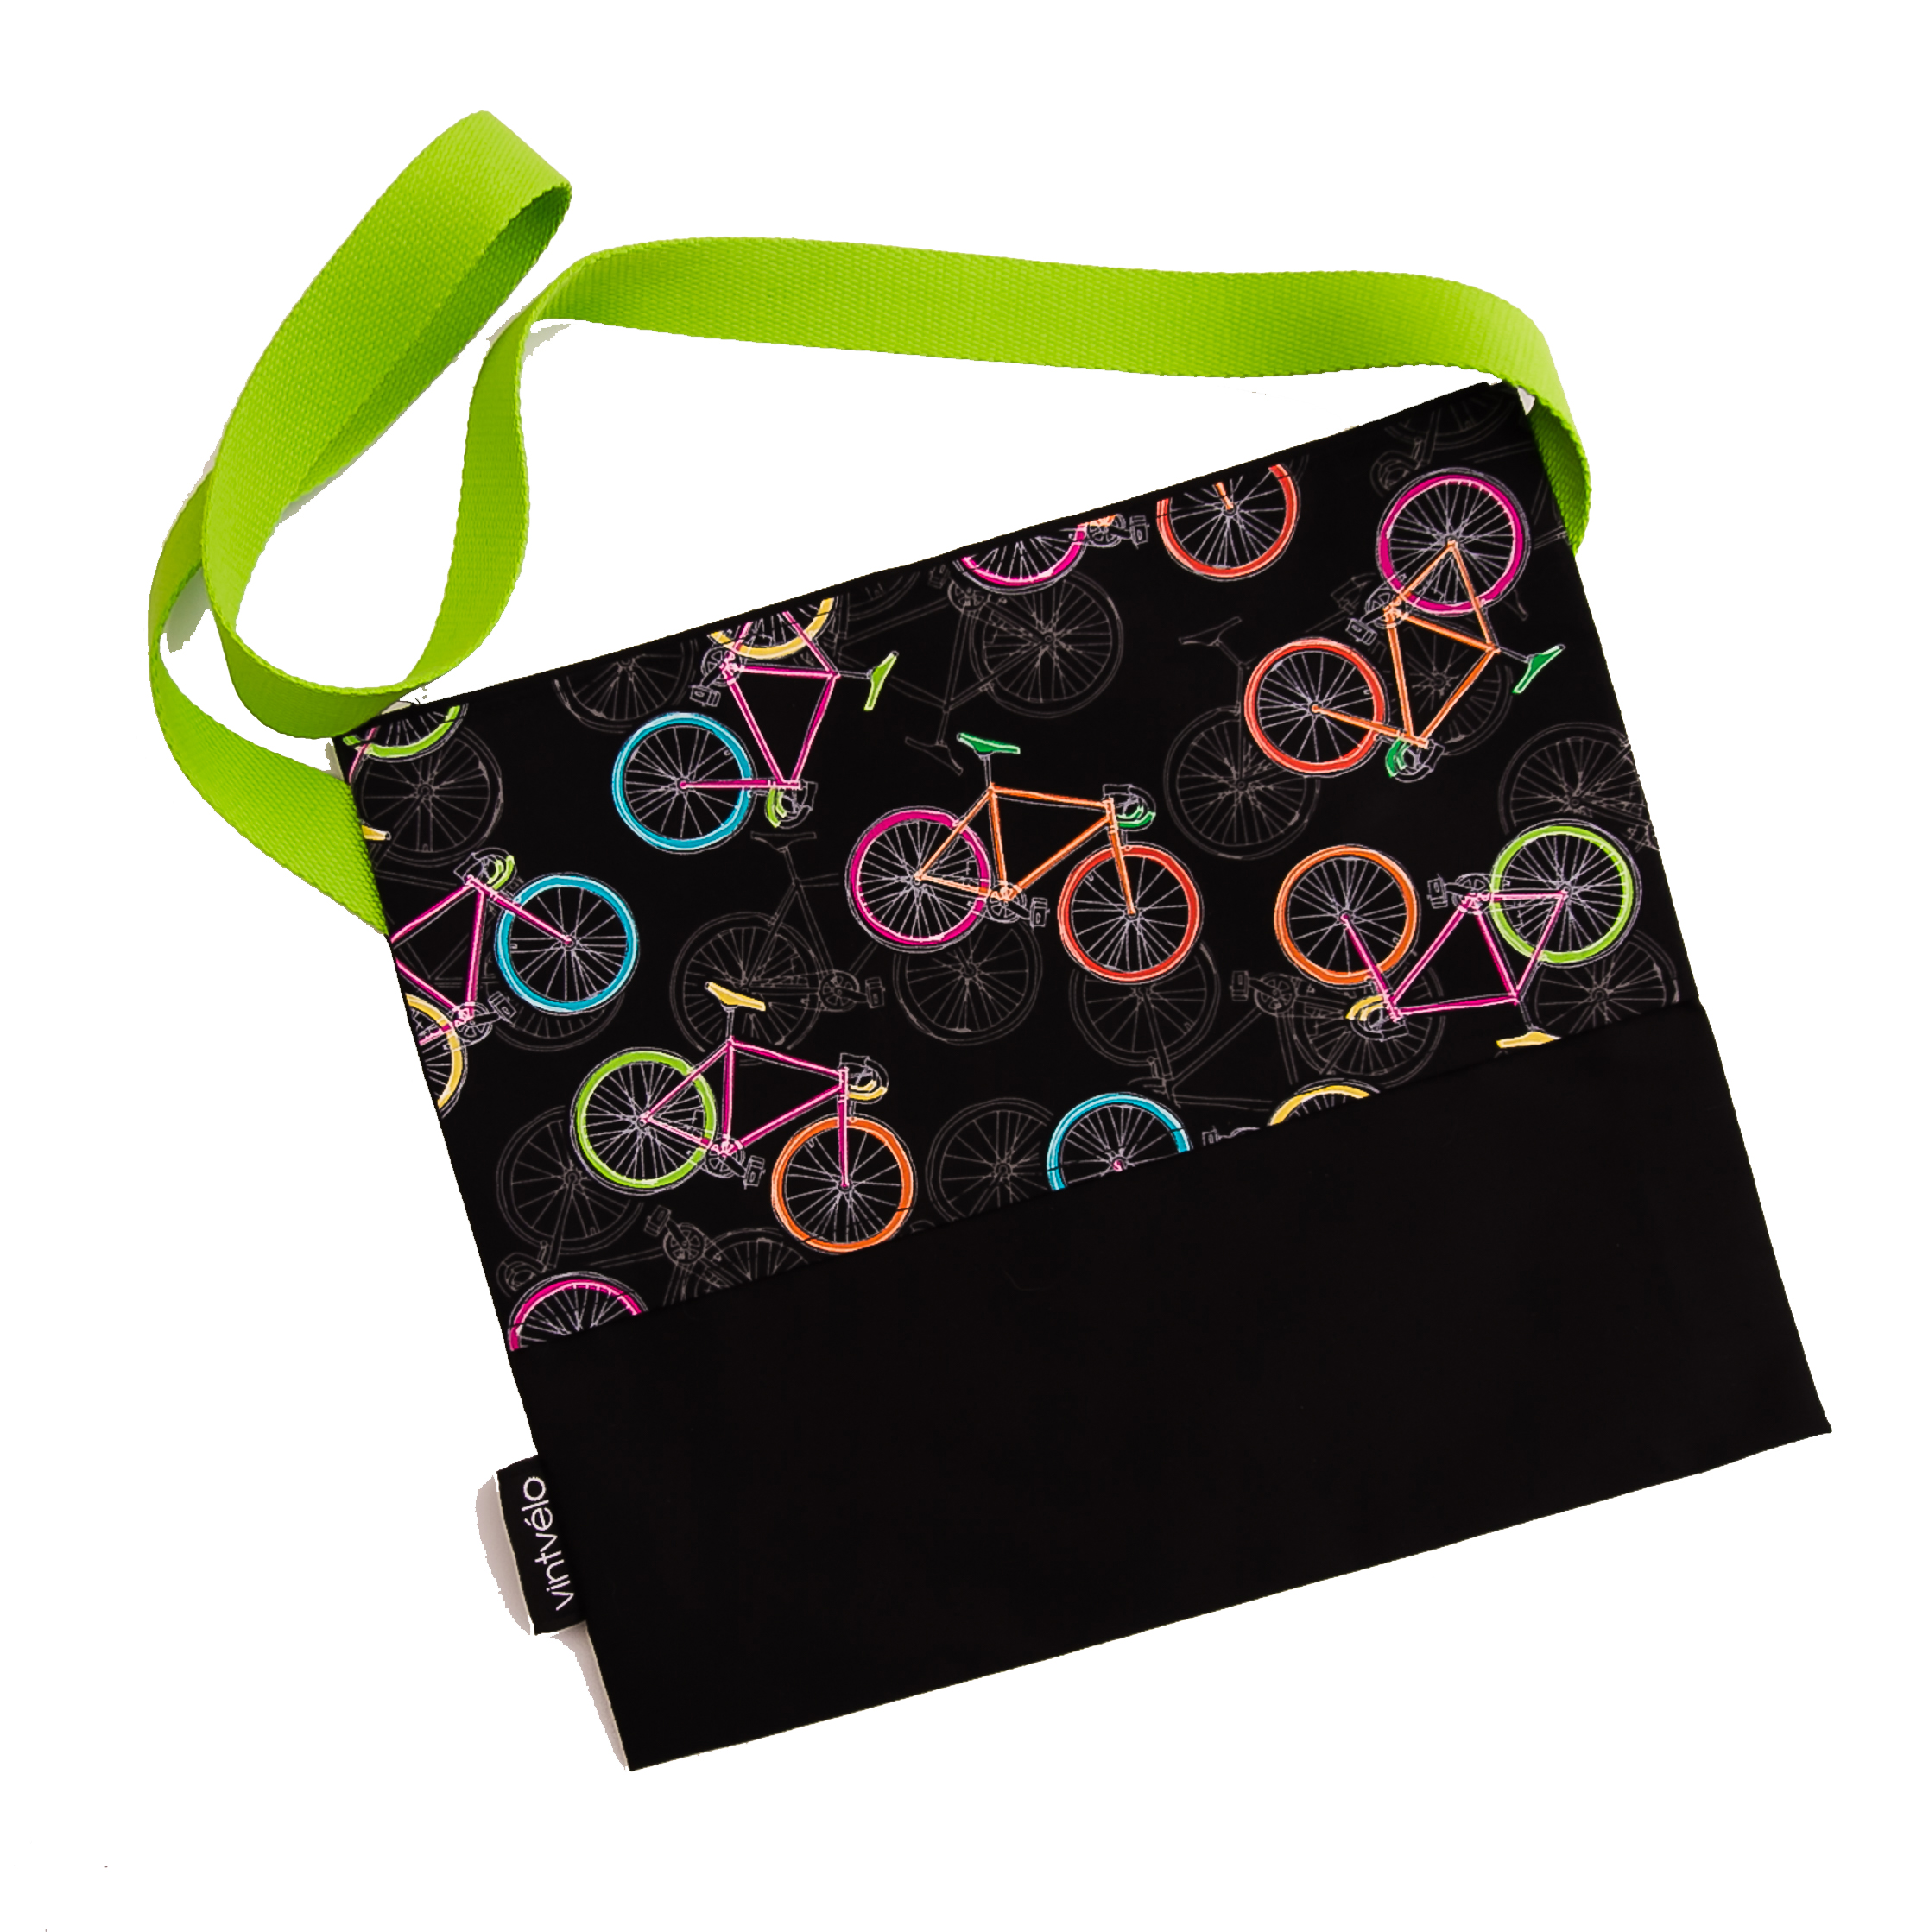 Cycling musette bags